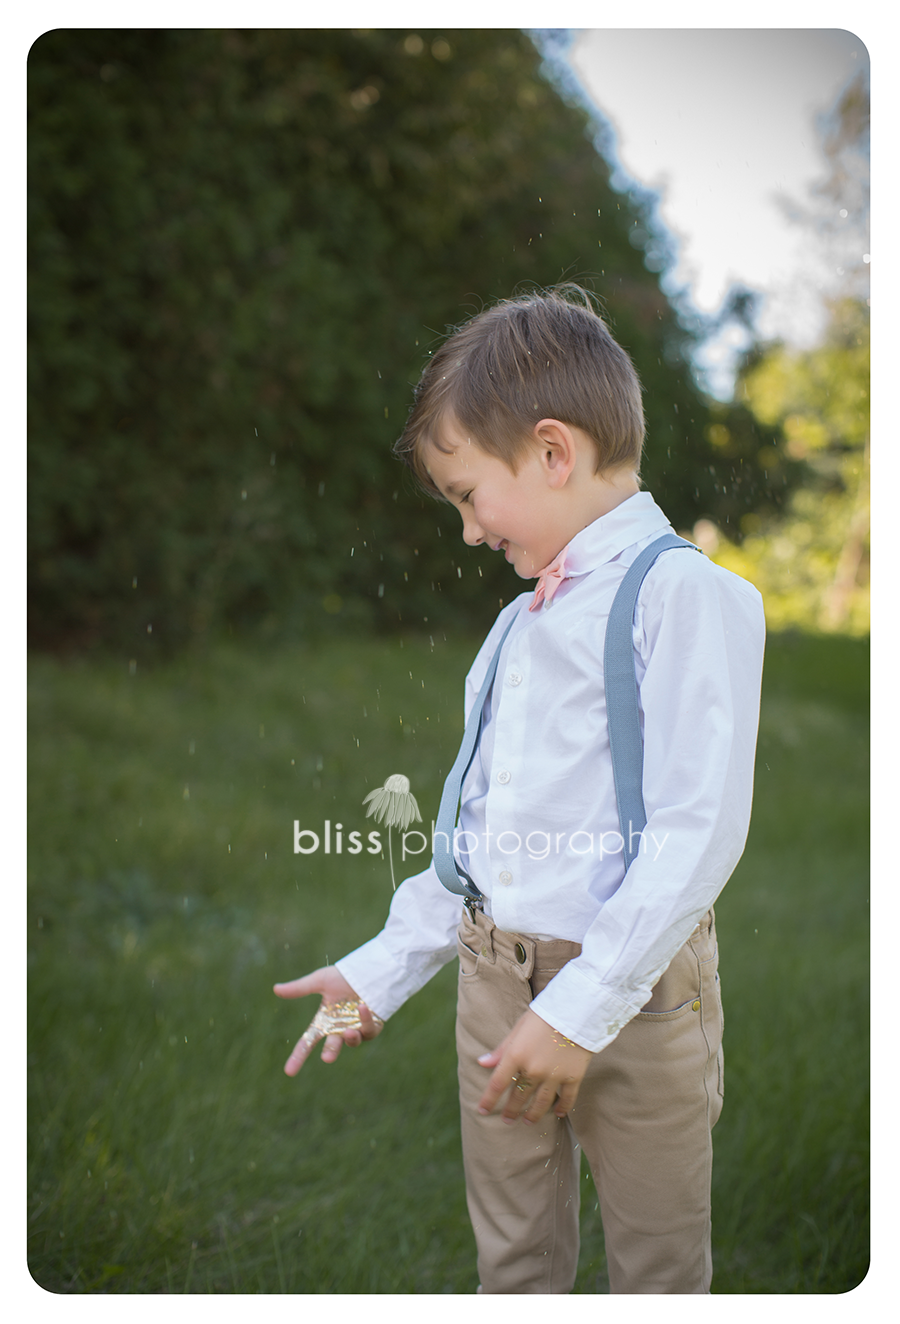 bliss photography-6549